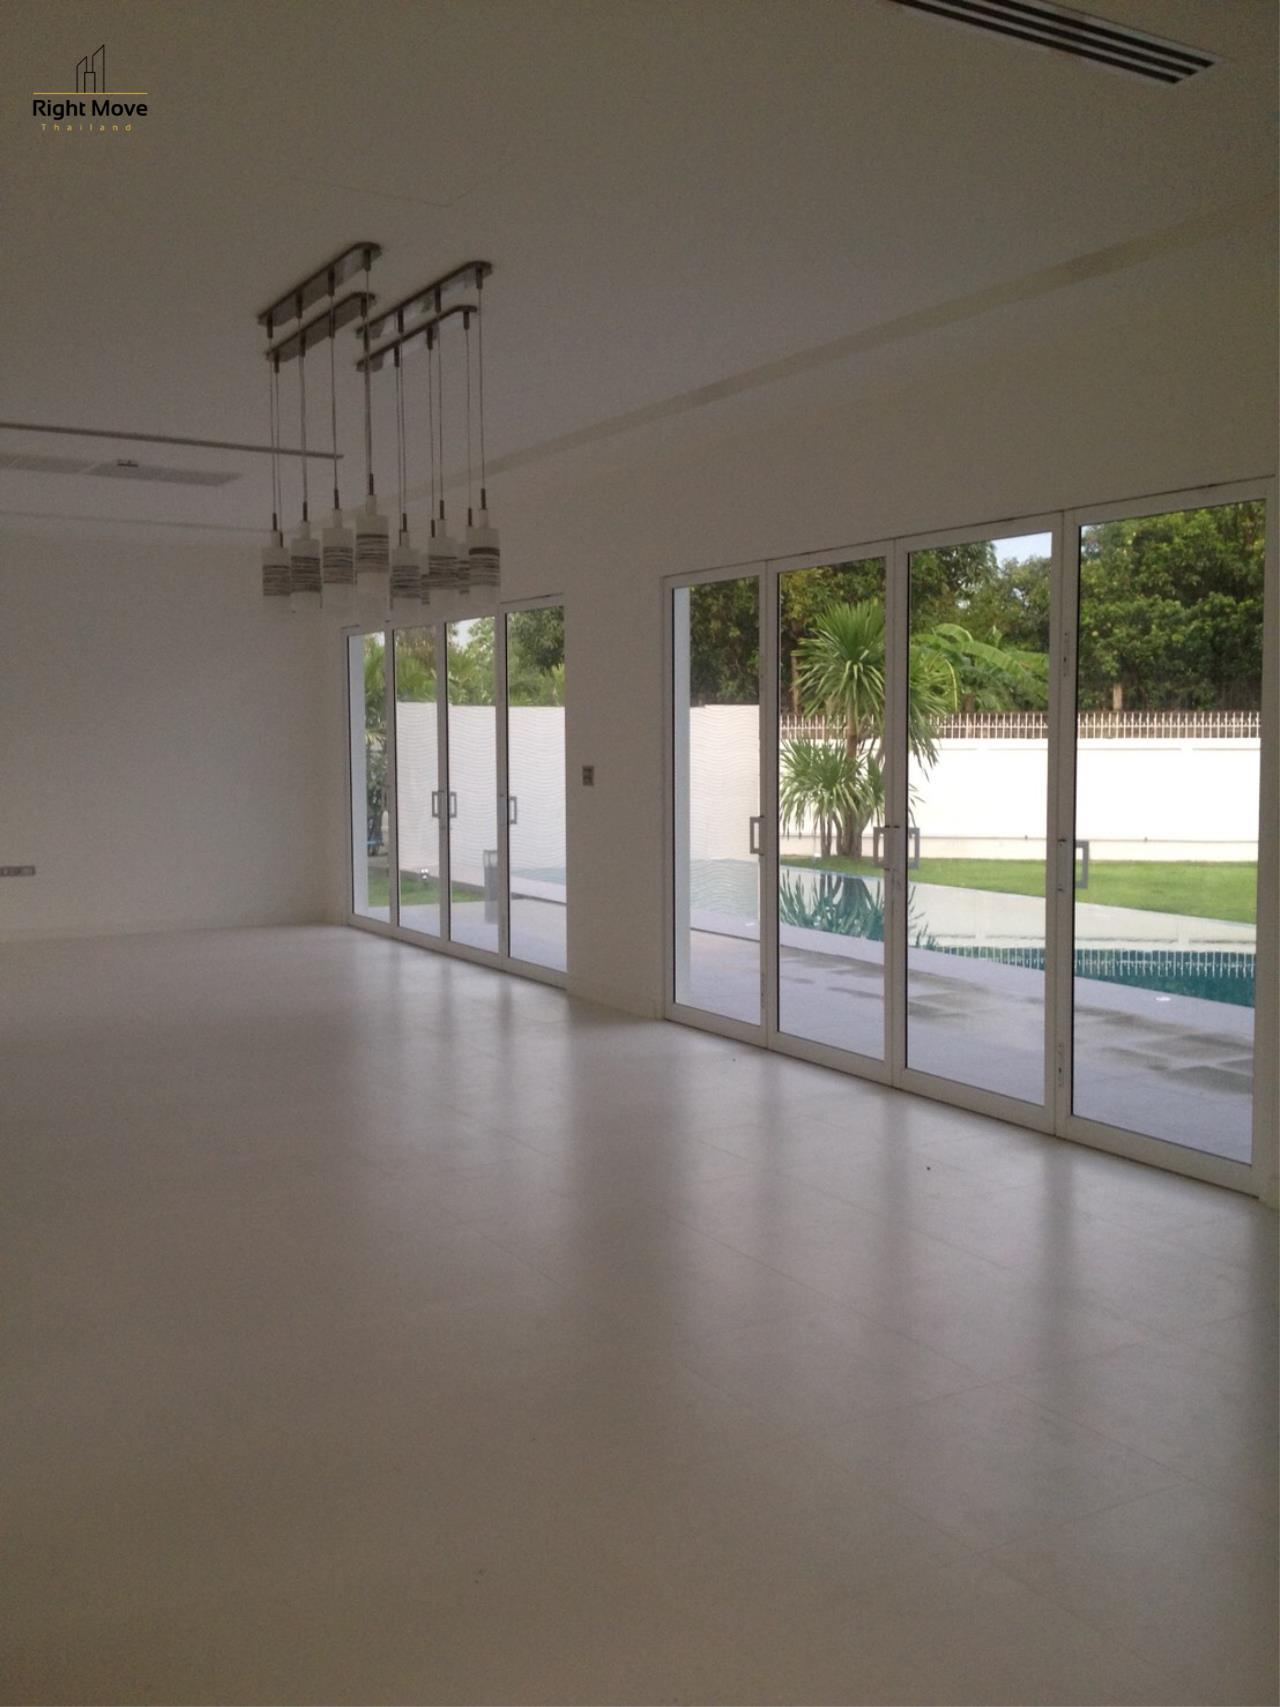 Right Move Thailand Agency's HR963 House with private pool - For Rent 180,000 THB 4 Bedrooms 450 Sqm 200 Sqw 6